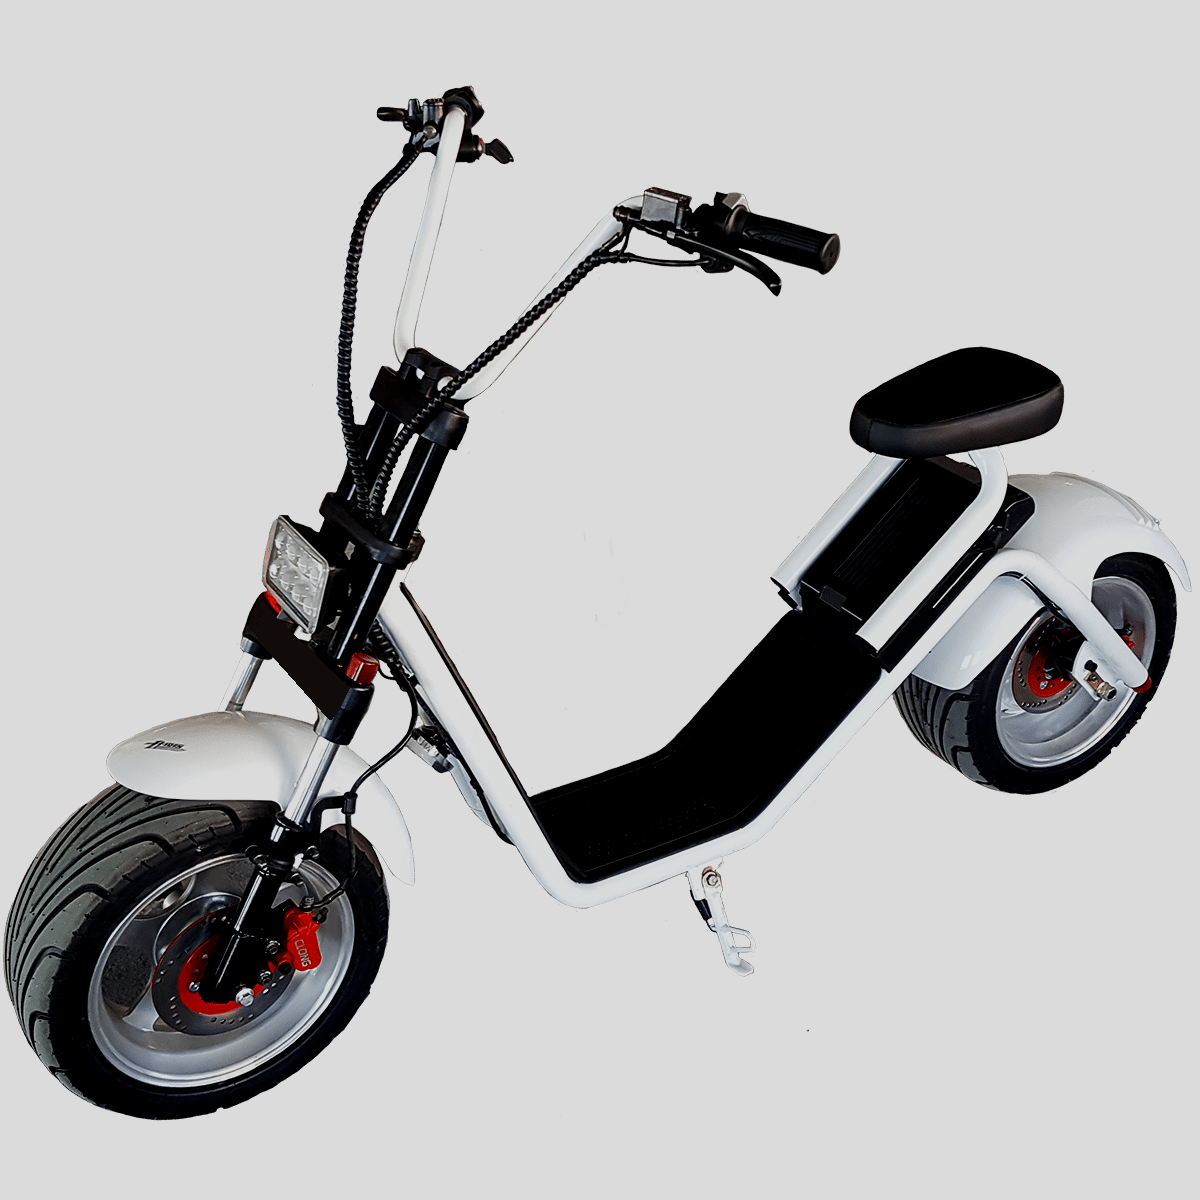 elektro scooter mit strassenzulassung. Black Bedroom Furniture Sets. Home Design Ideas